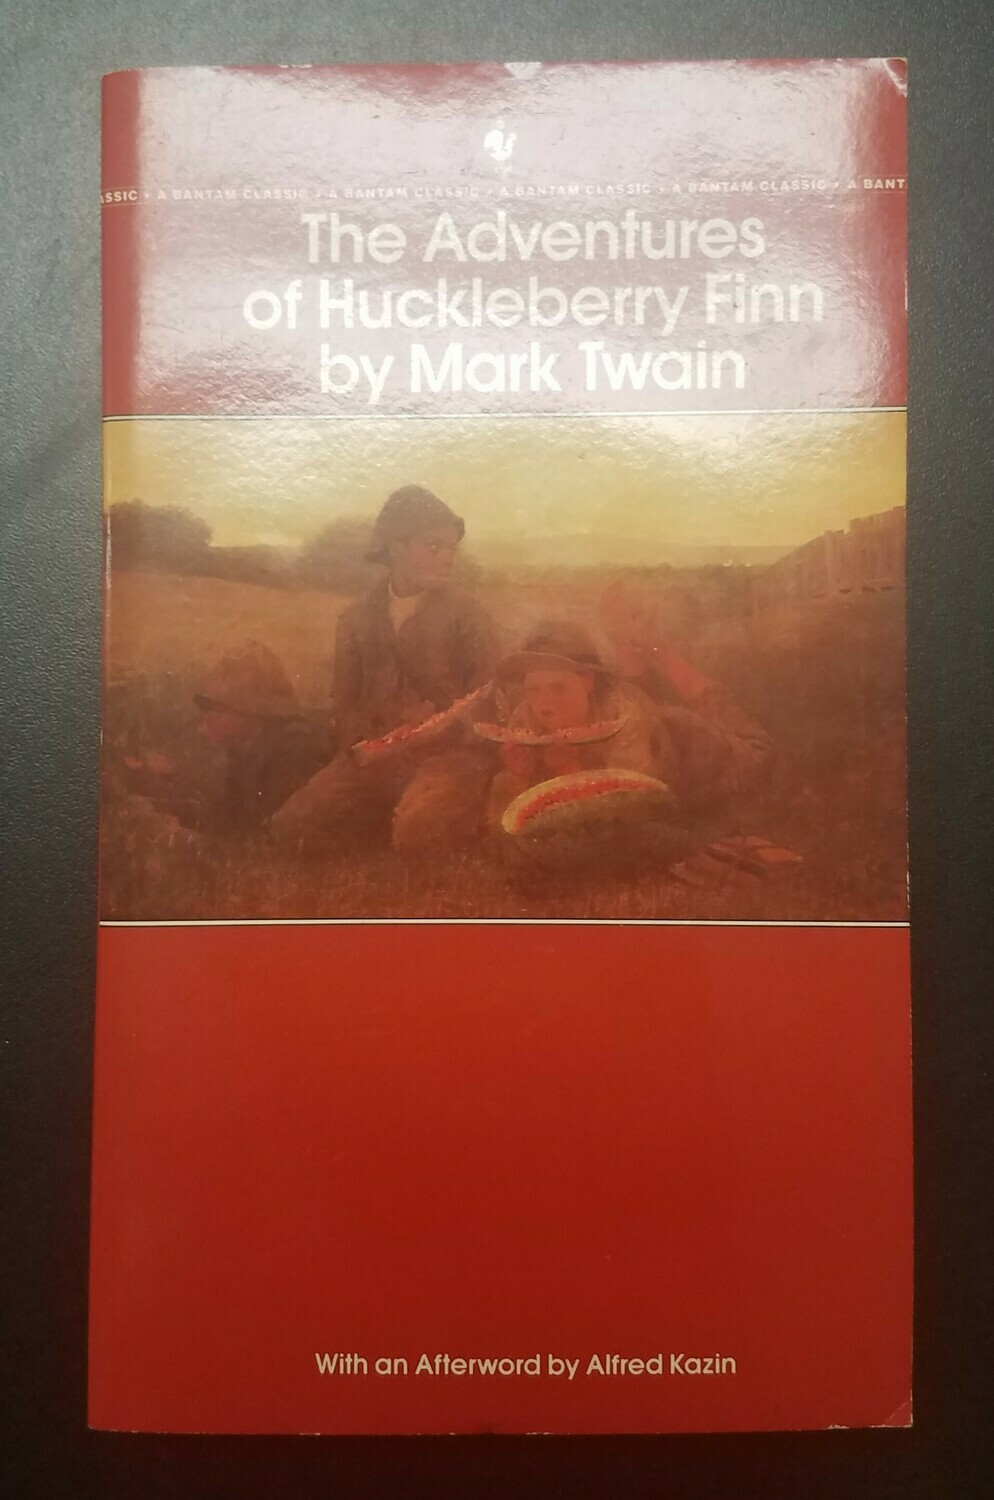 The Aventures of Huckleberry Finn by Mark Twain